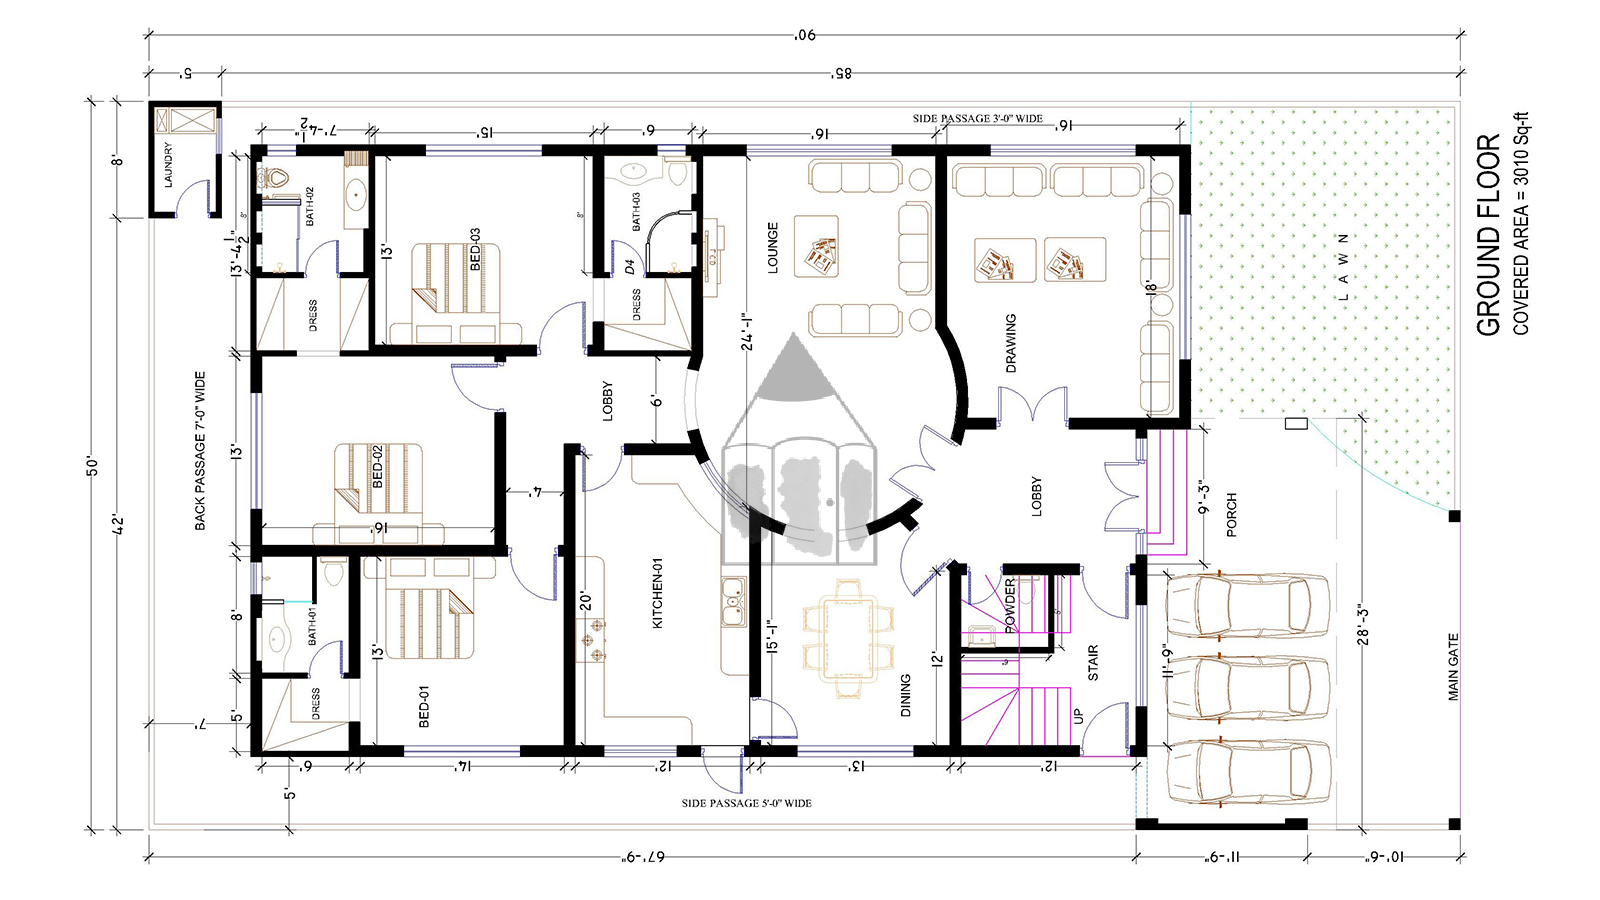 Ground floor architectural plan of 1 kanal house the for One kanal house plan